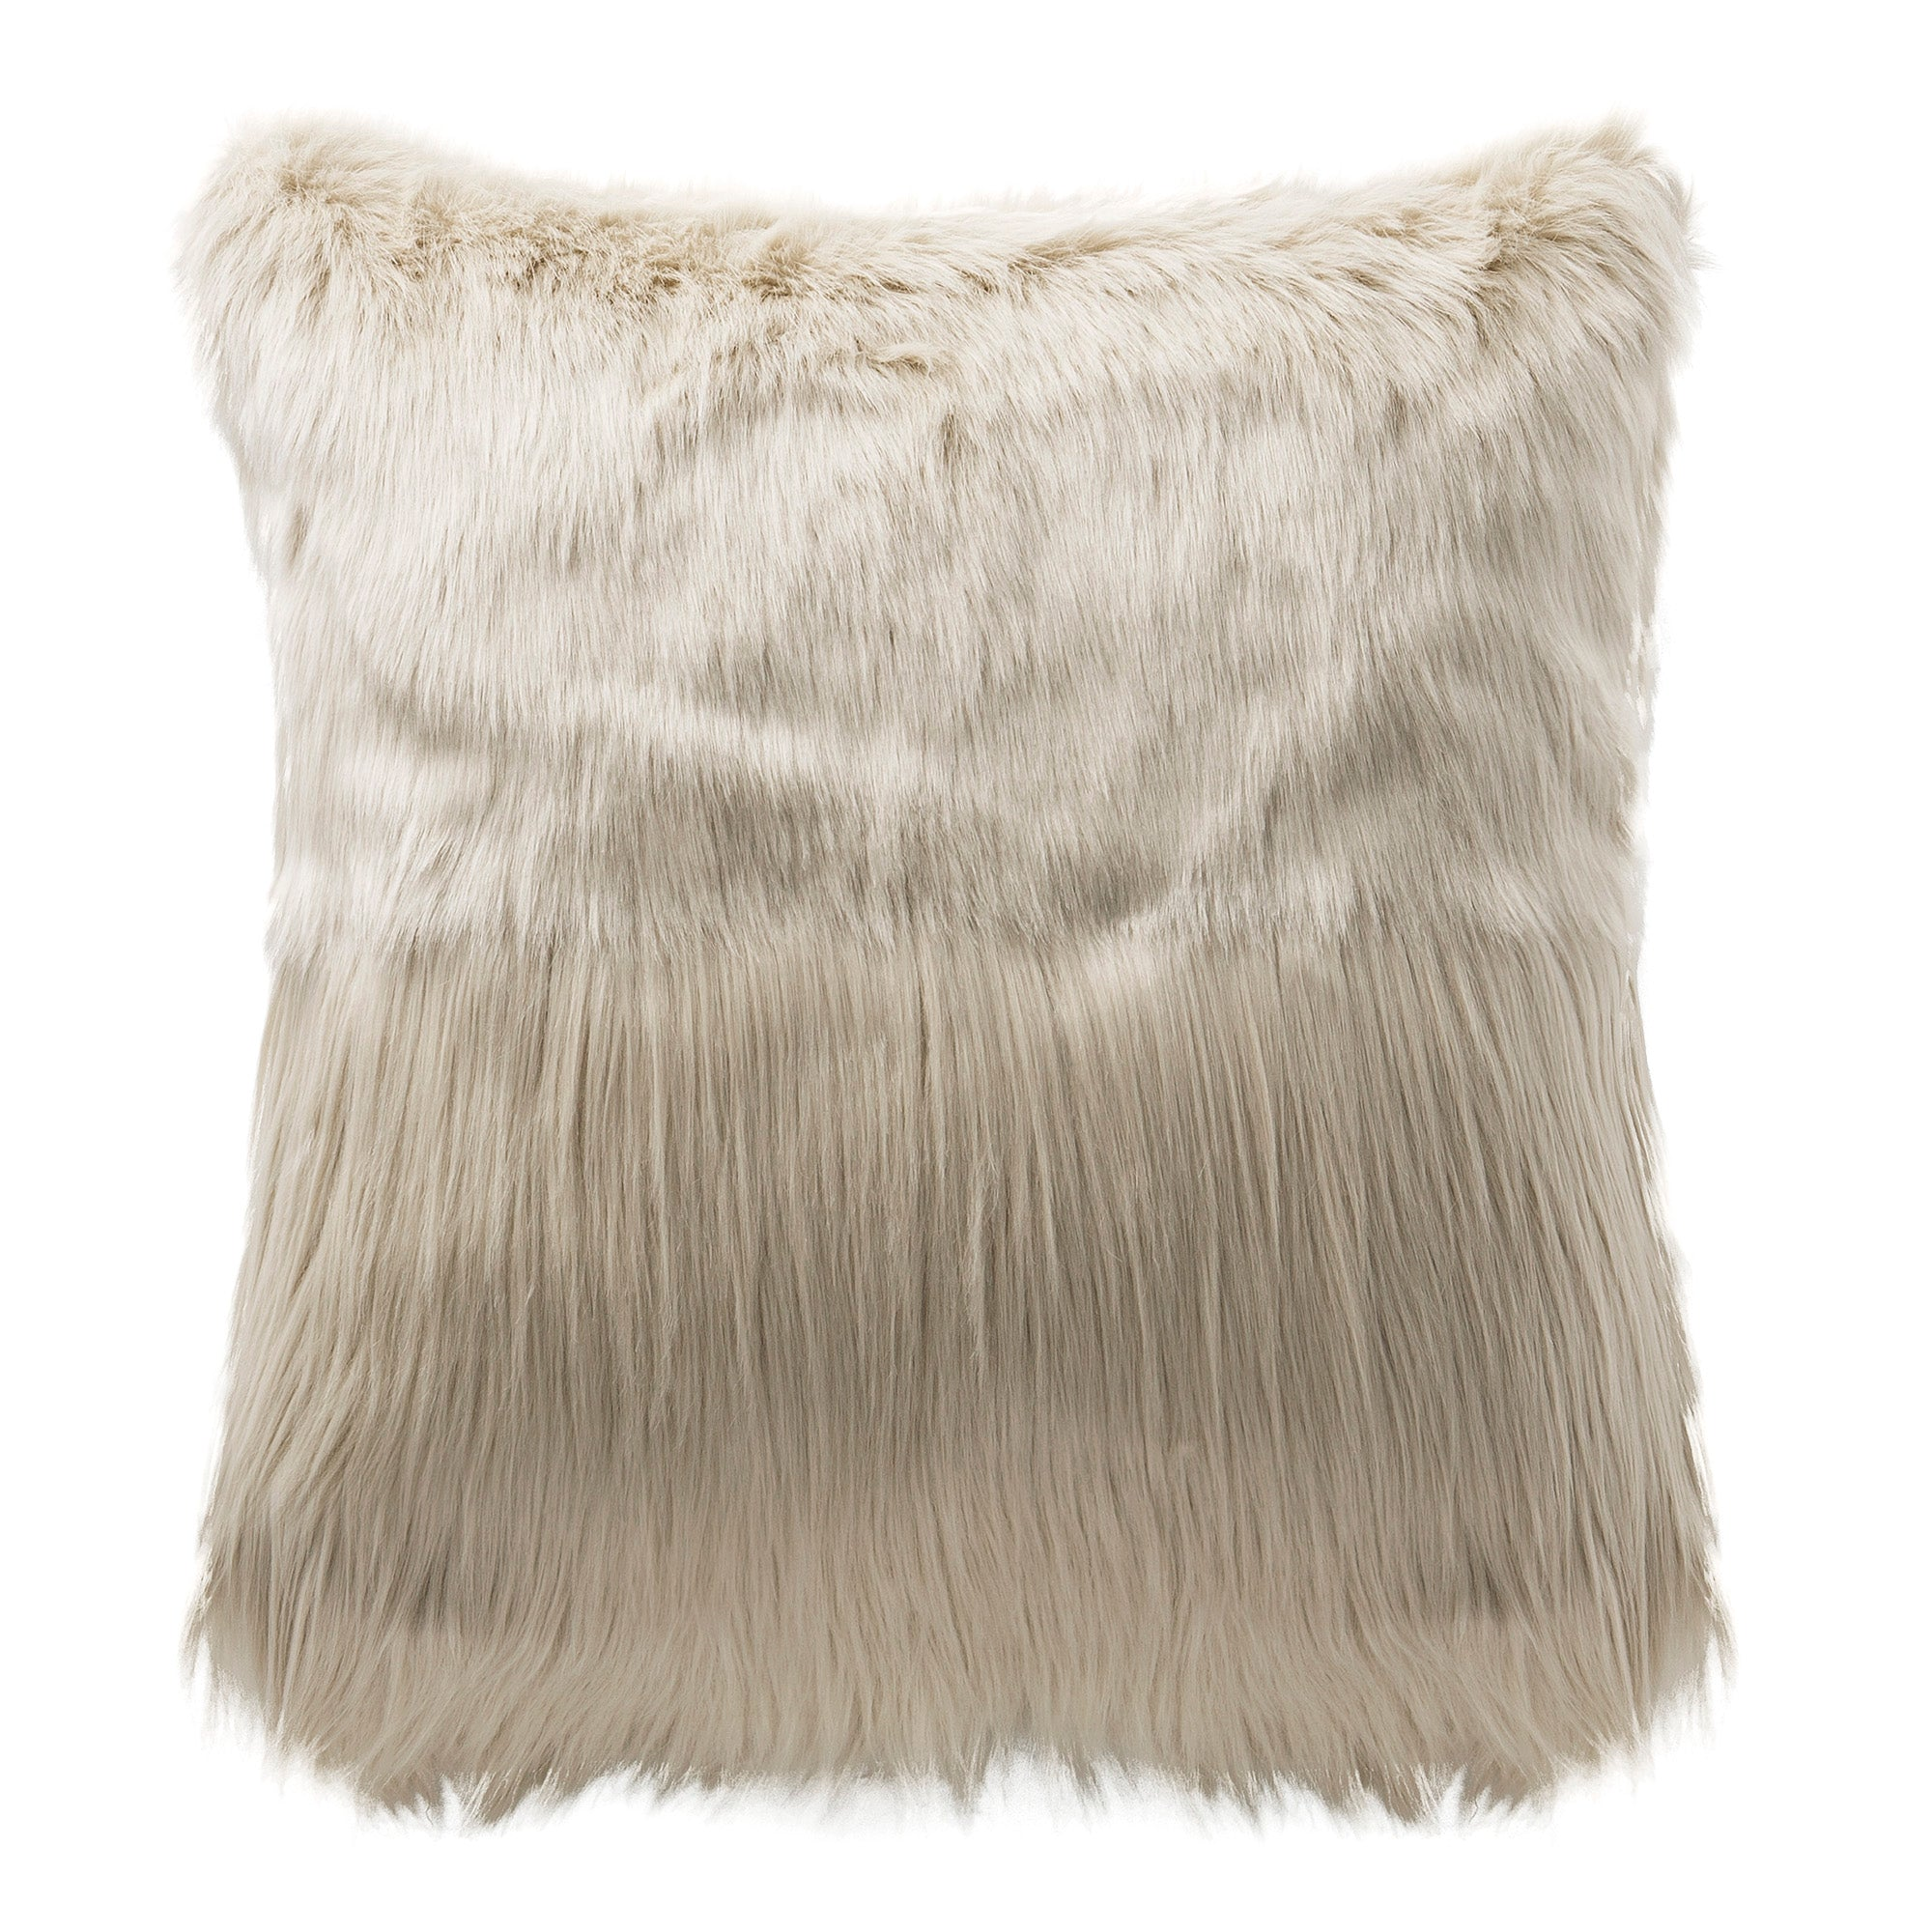 cushion shop cushions pillow home the fur ferboy in faux